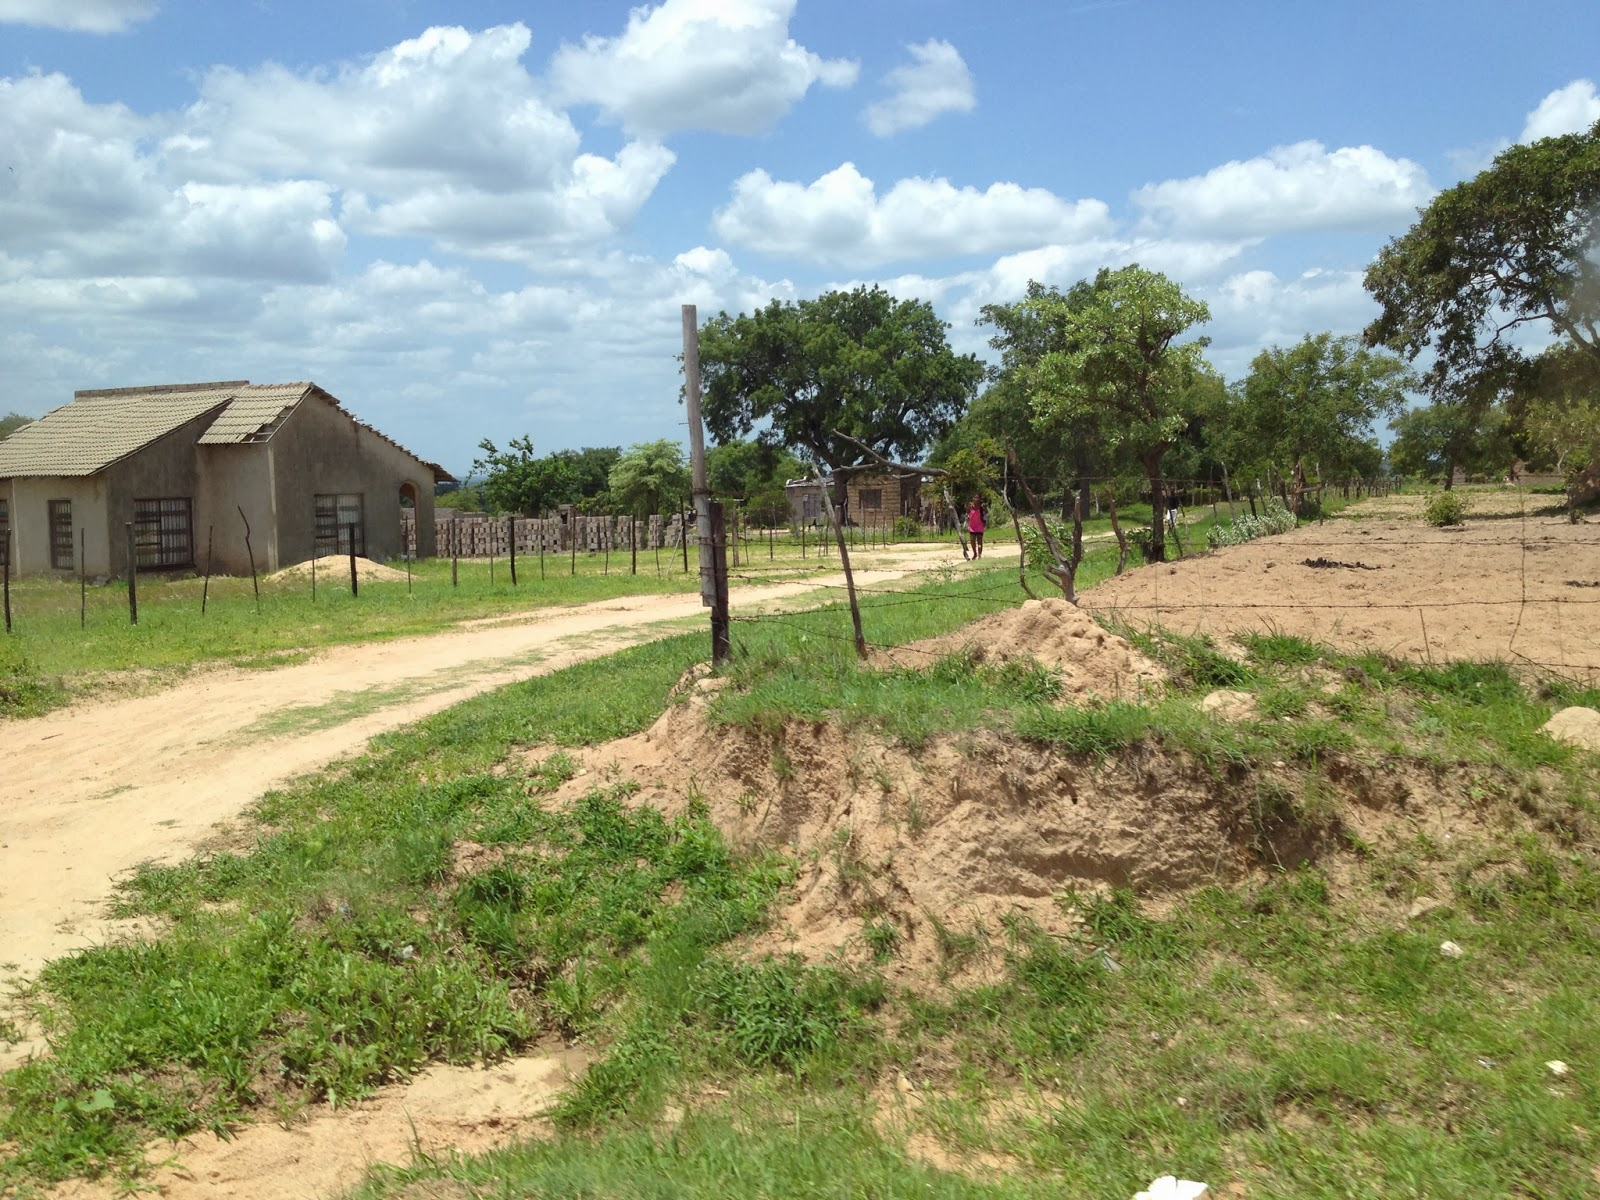 Some residences on our way to Hoedspruit Airport